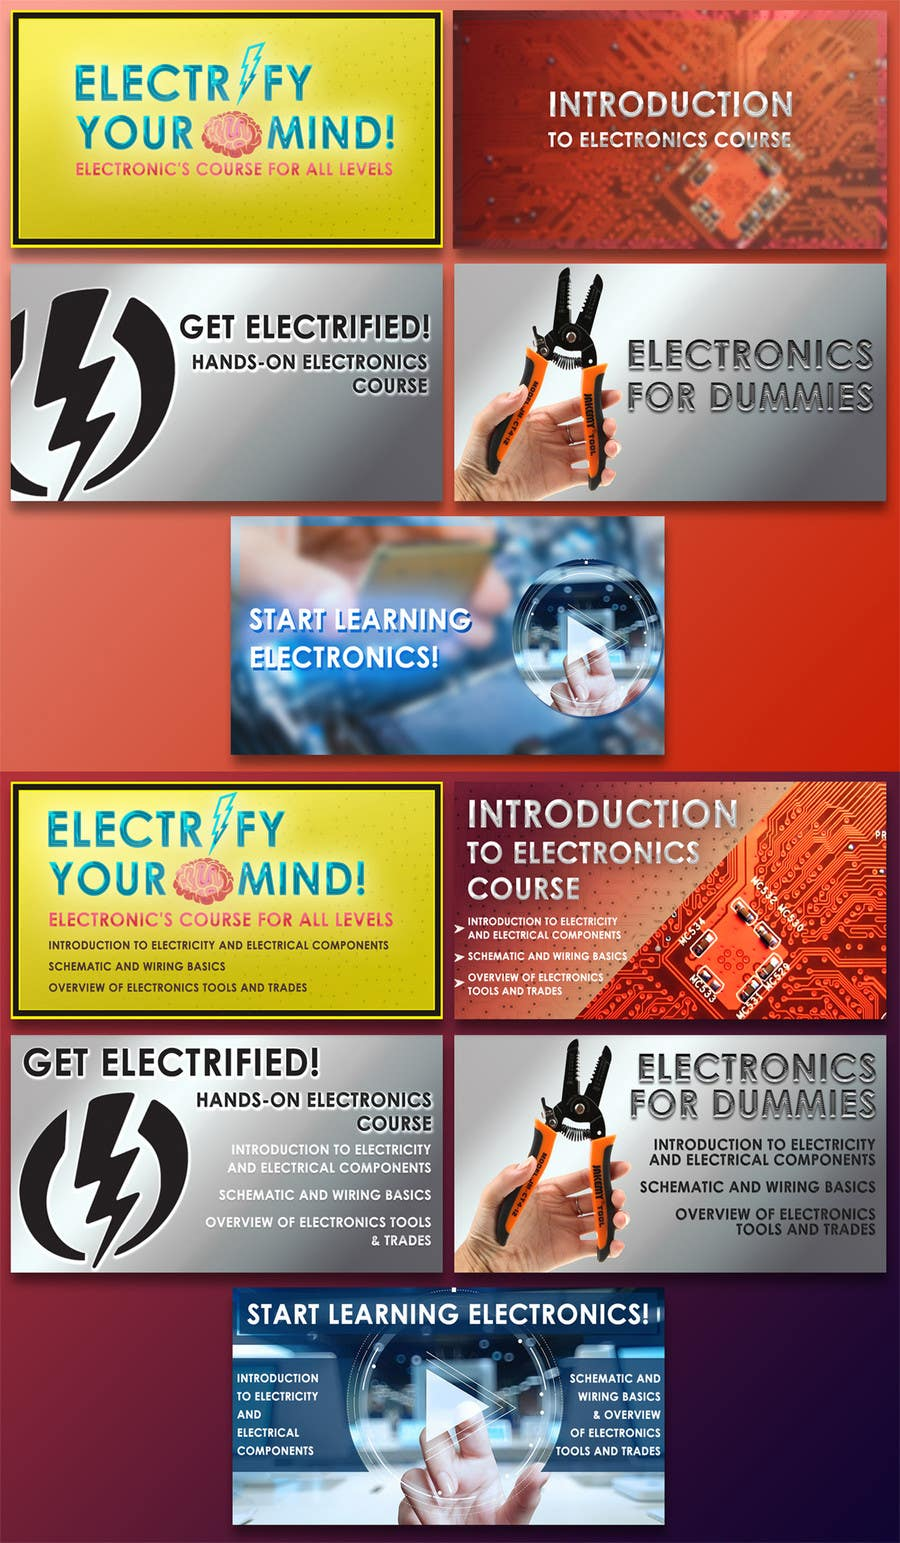 Design a Banner for a Facebook Ad - Electronics Course ... on basic sailboat wiring-diagram, basic concrete for dummies, electrical schematics for dummies, basic marine wiring diagrams, basic electrical schematic diagrams,